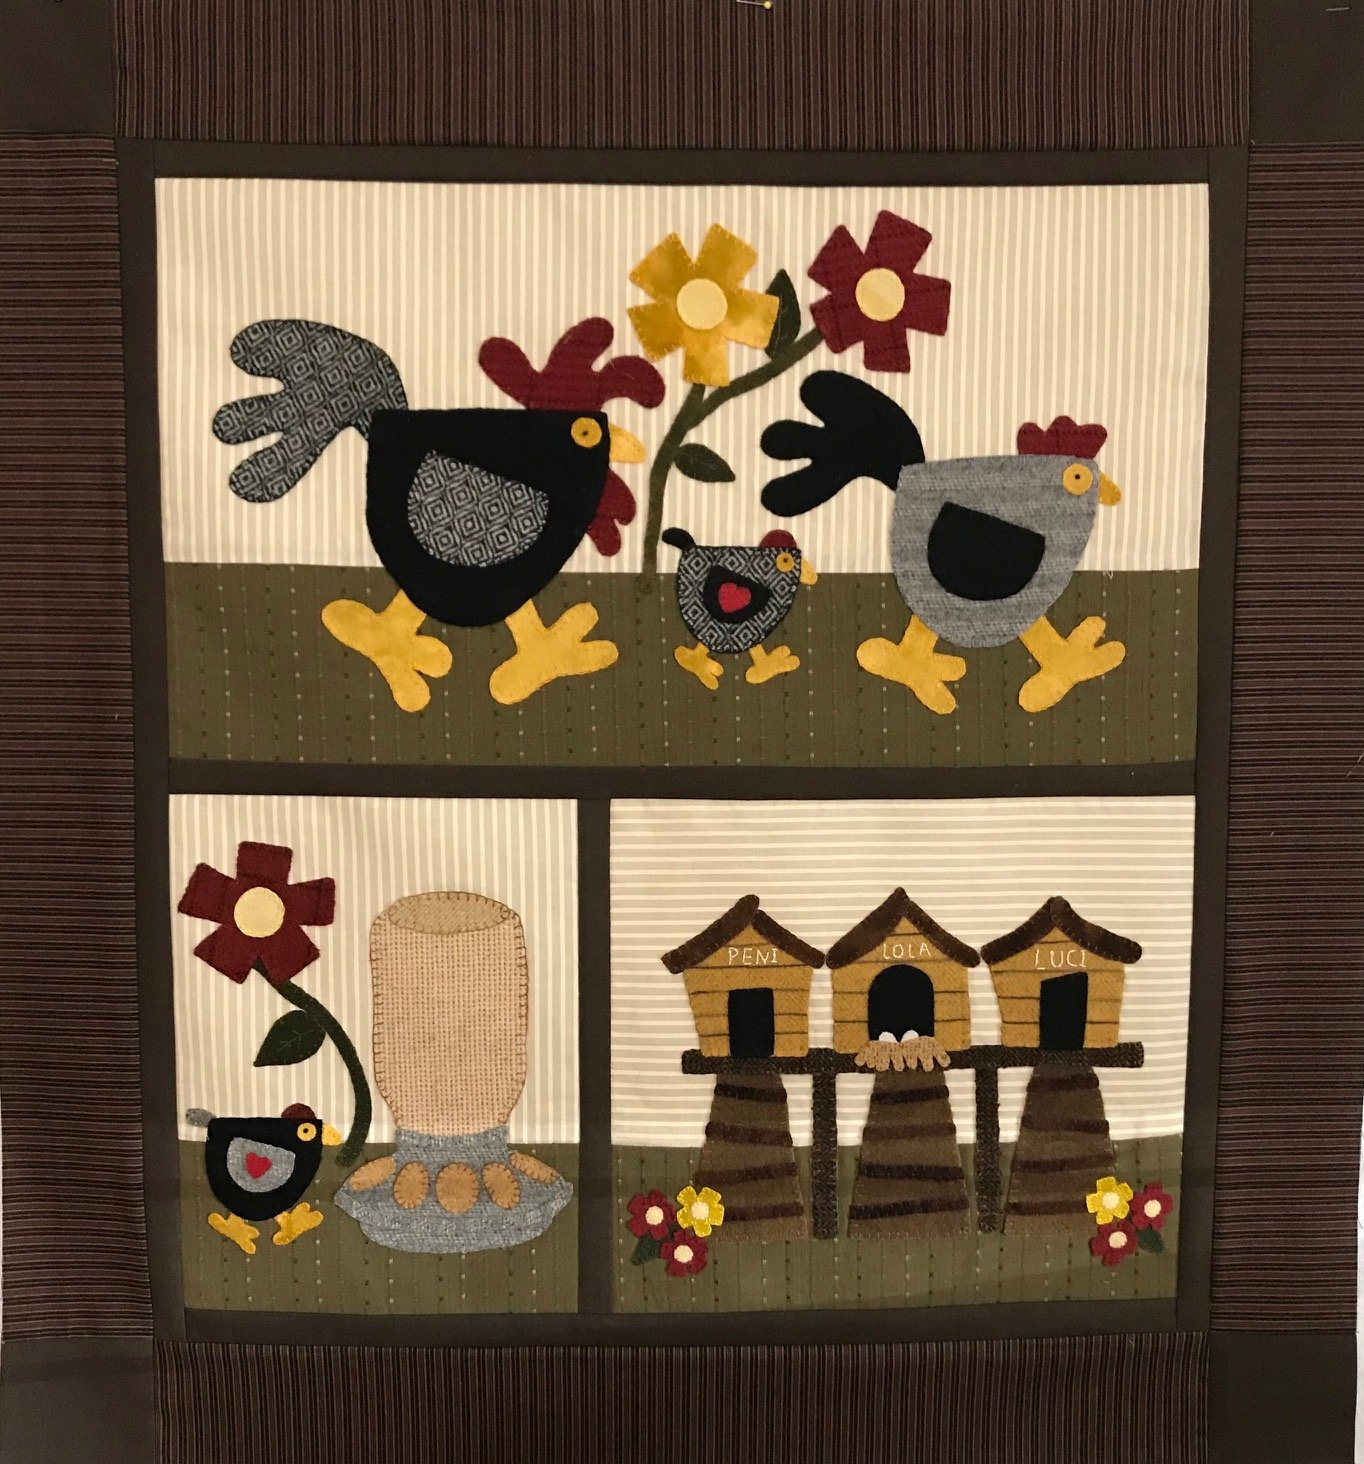 LoLa's Chicken Coop Pattern